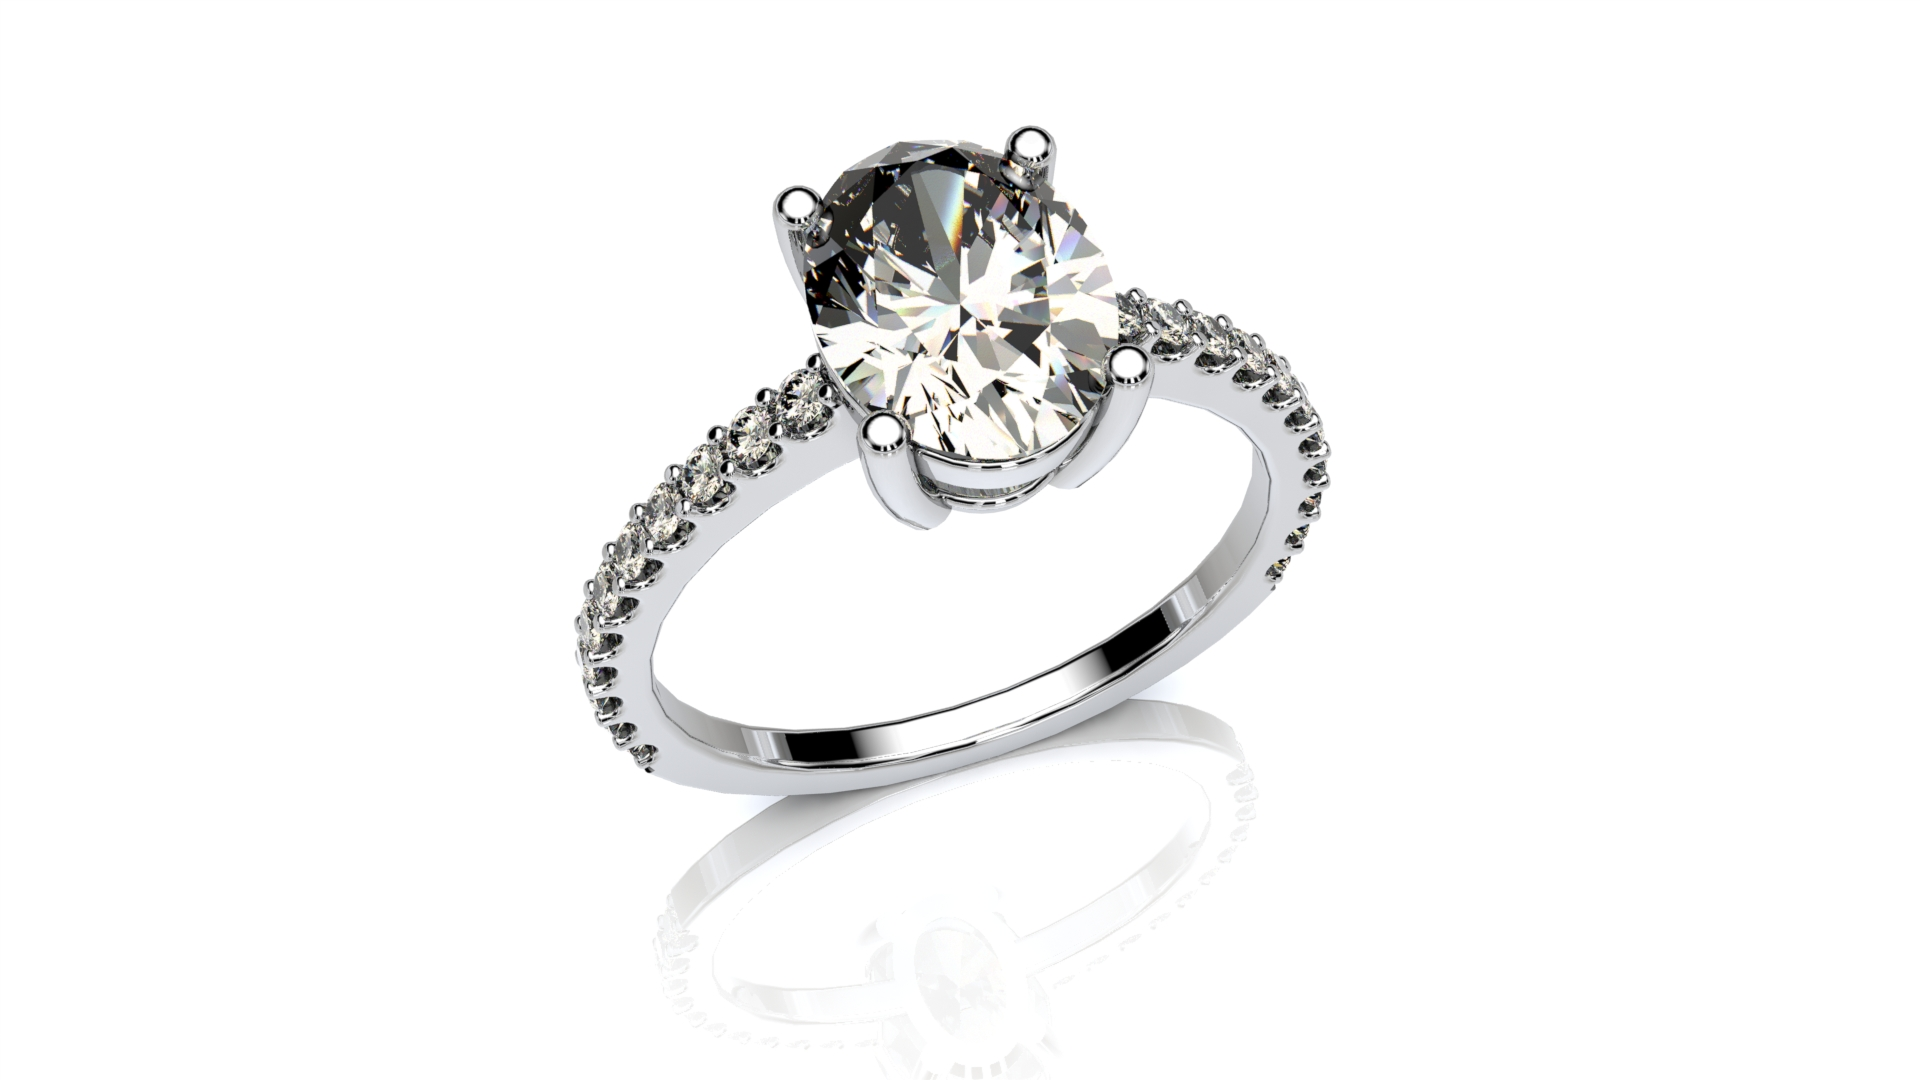 Oval gallery engagement ring